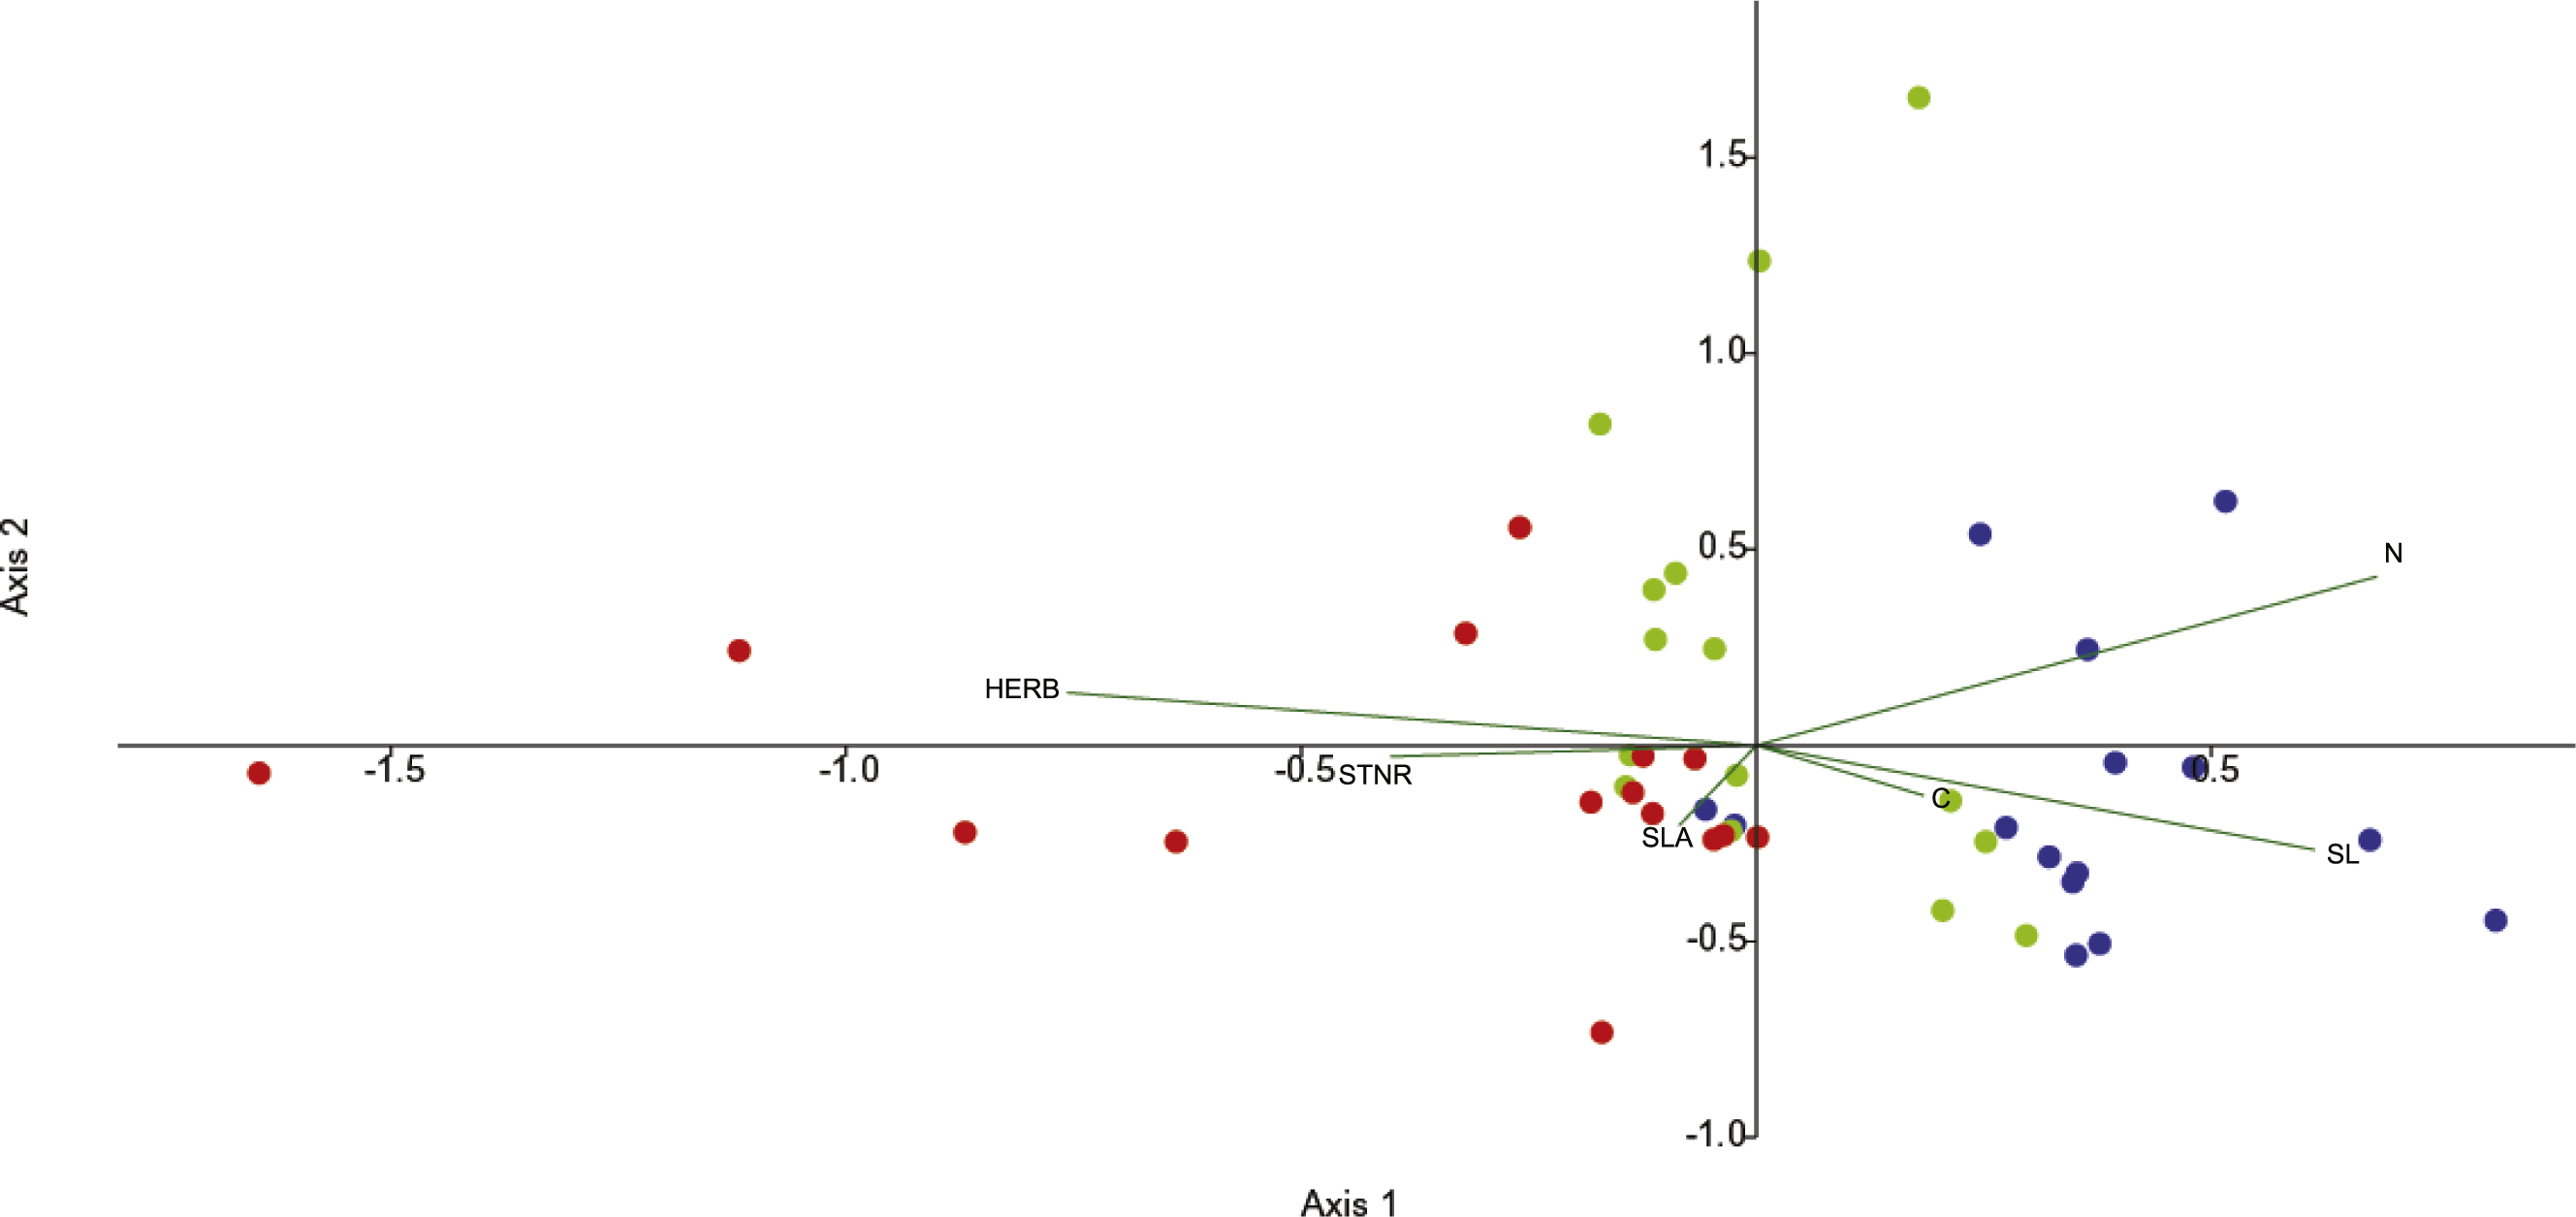 fig 2 full temporal shifts in endophyte bacterial community composition of